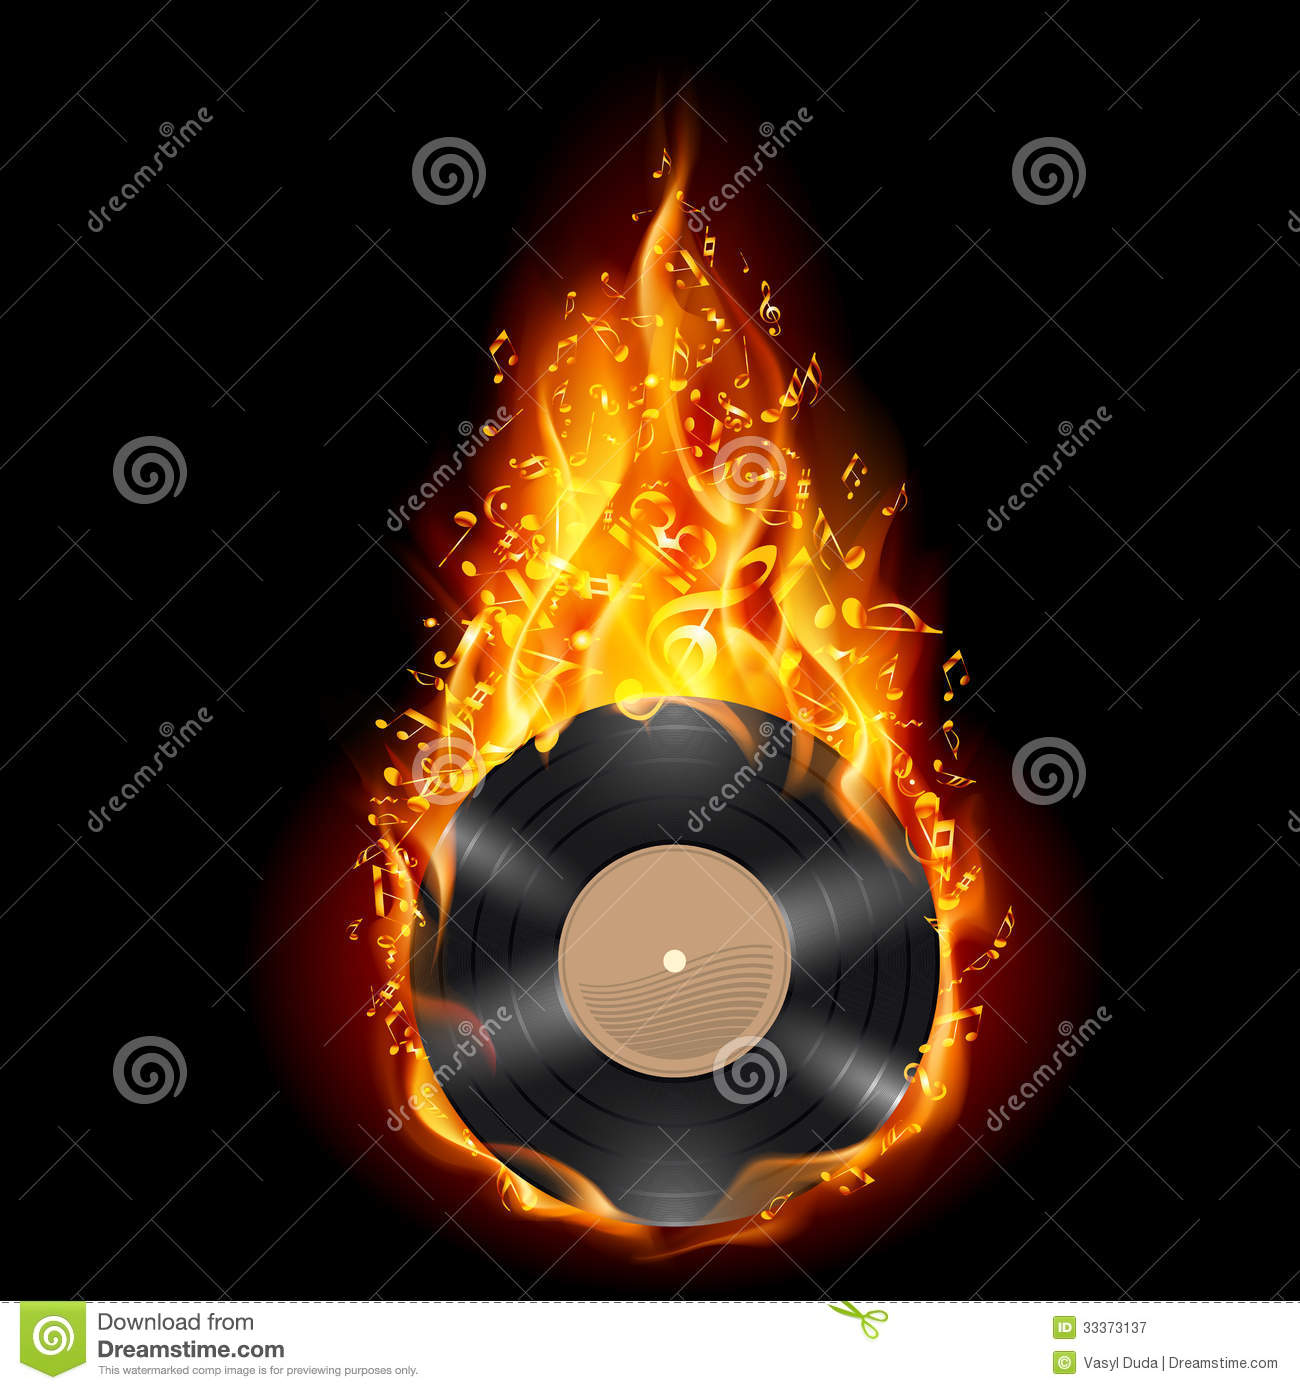 Vinyl Disc In Flames Of Fire Royalty Free Stock